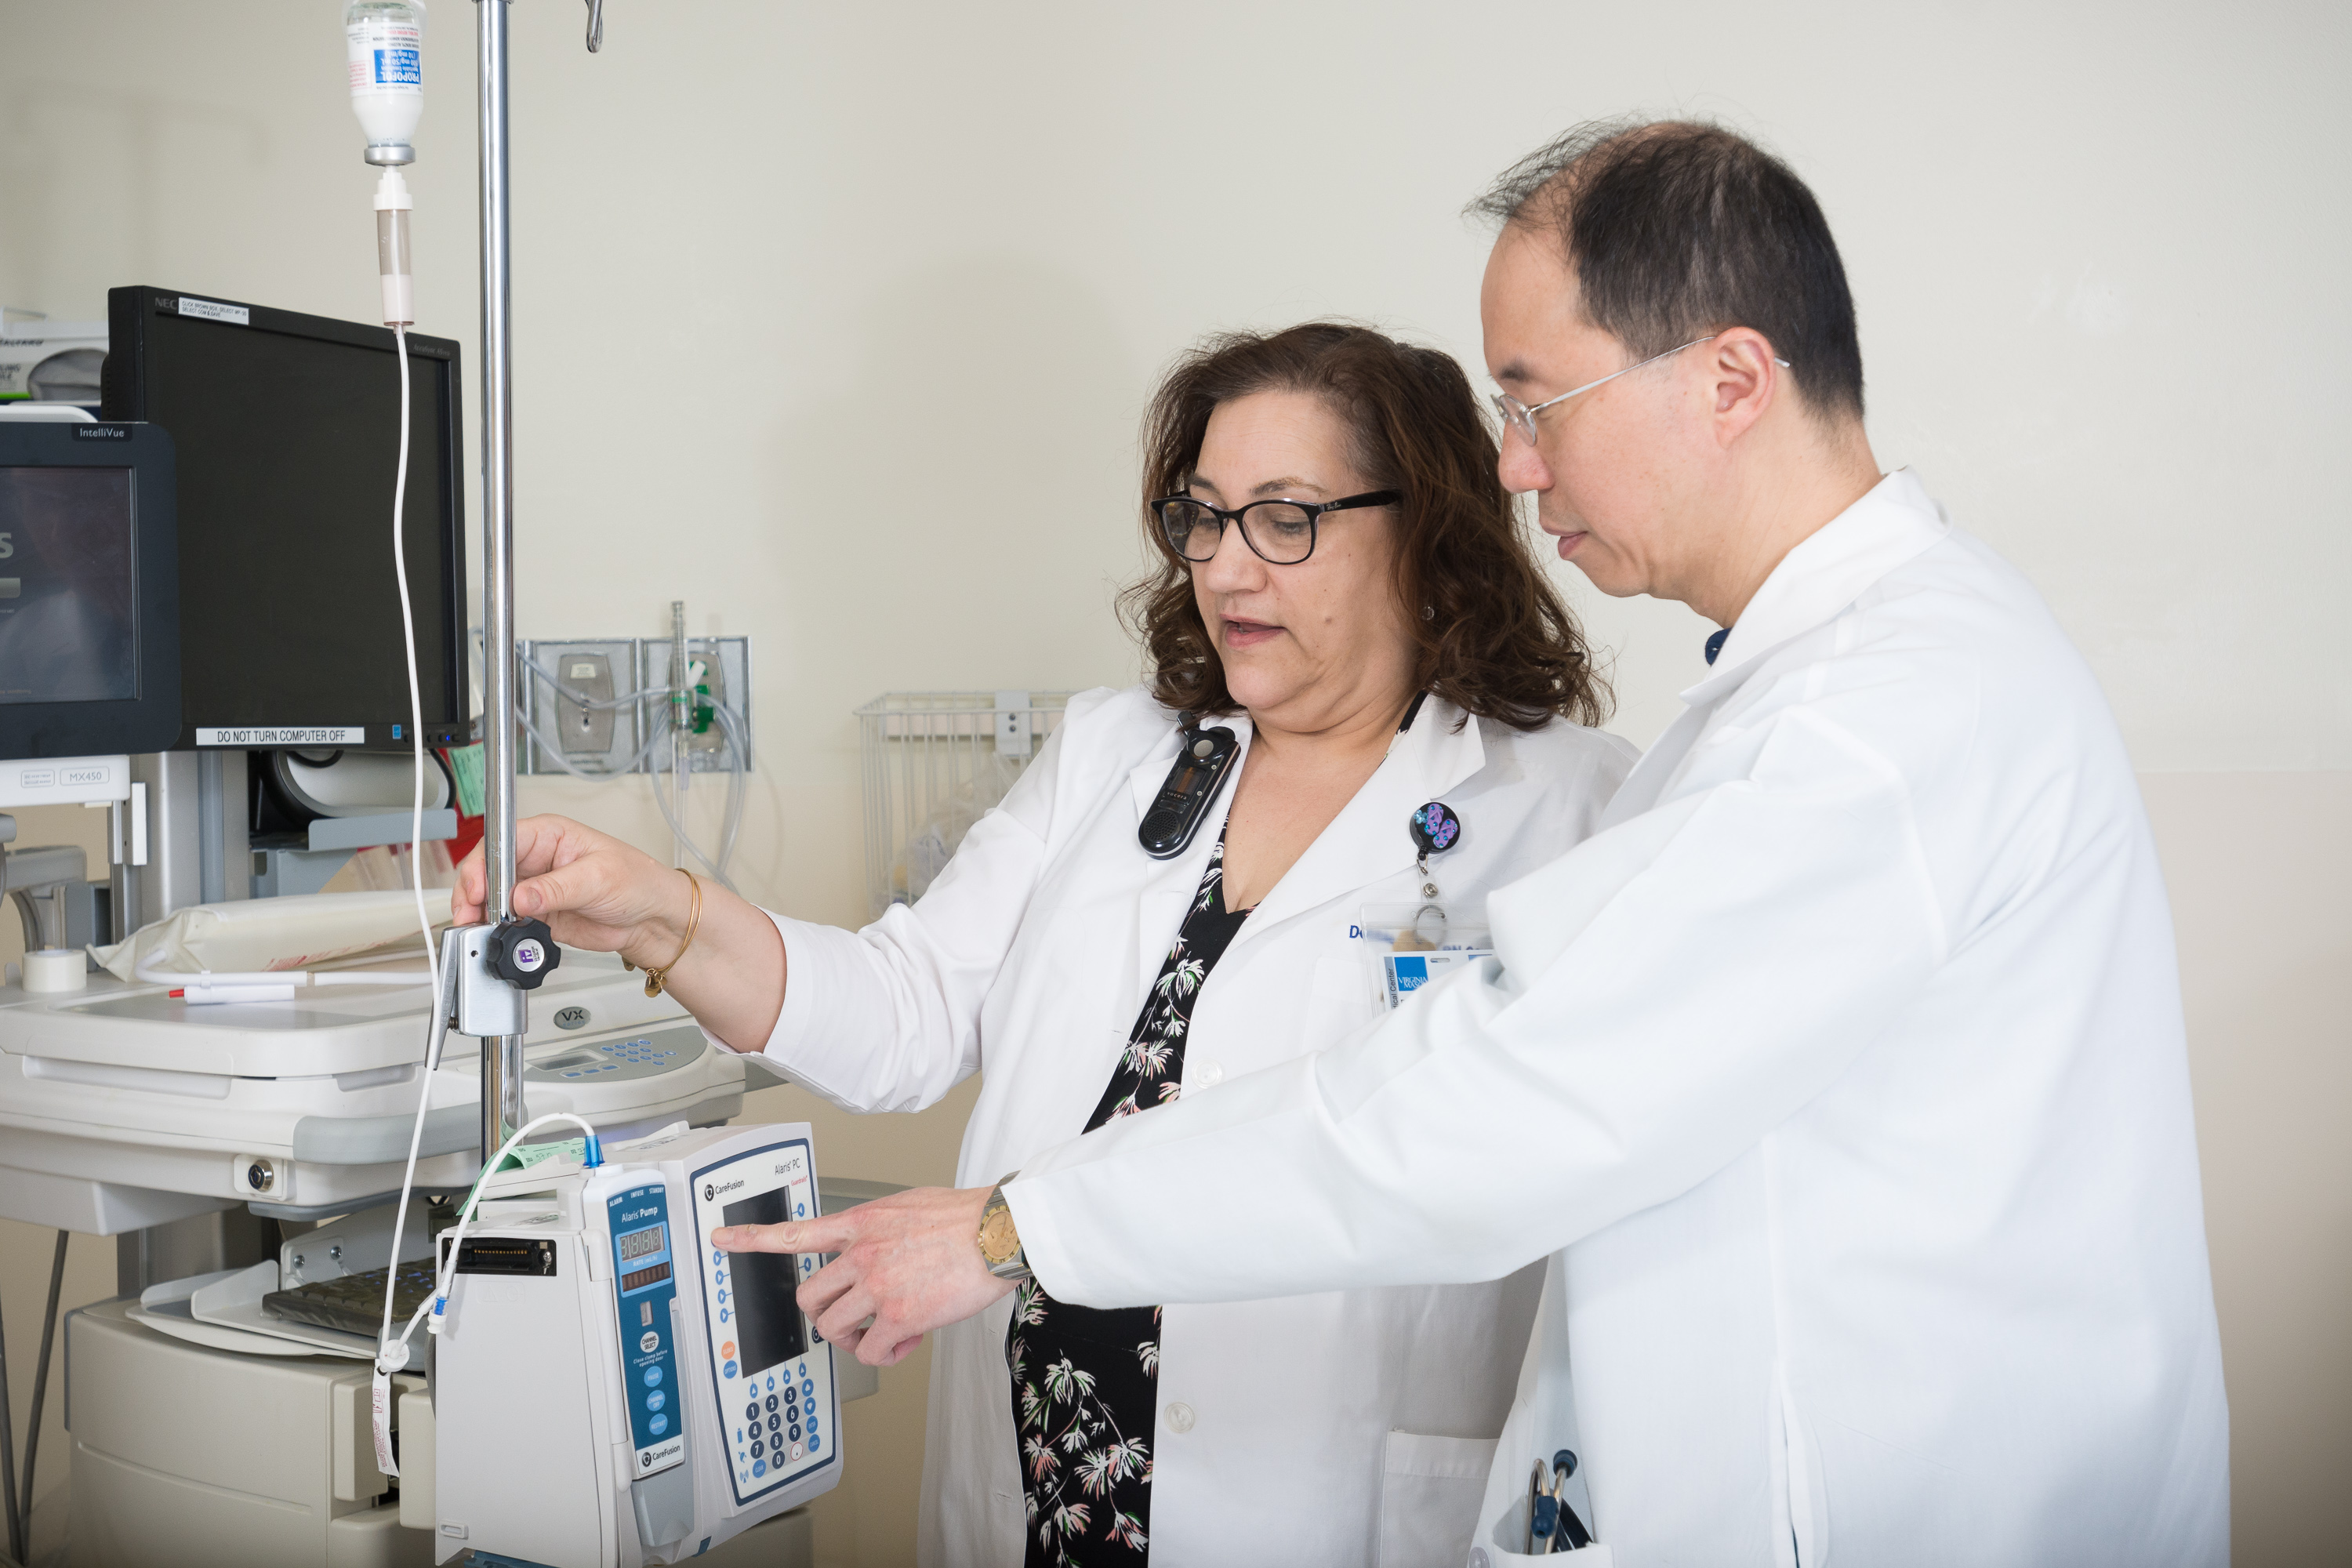 Deborah Tombs, RN, and DDI Quality Improvement Director, Otto Lin, MD, discuss propofol infusion dosing.